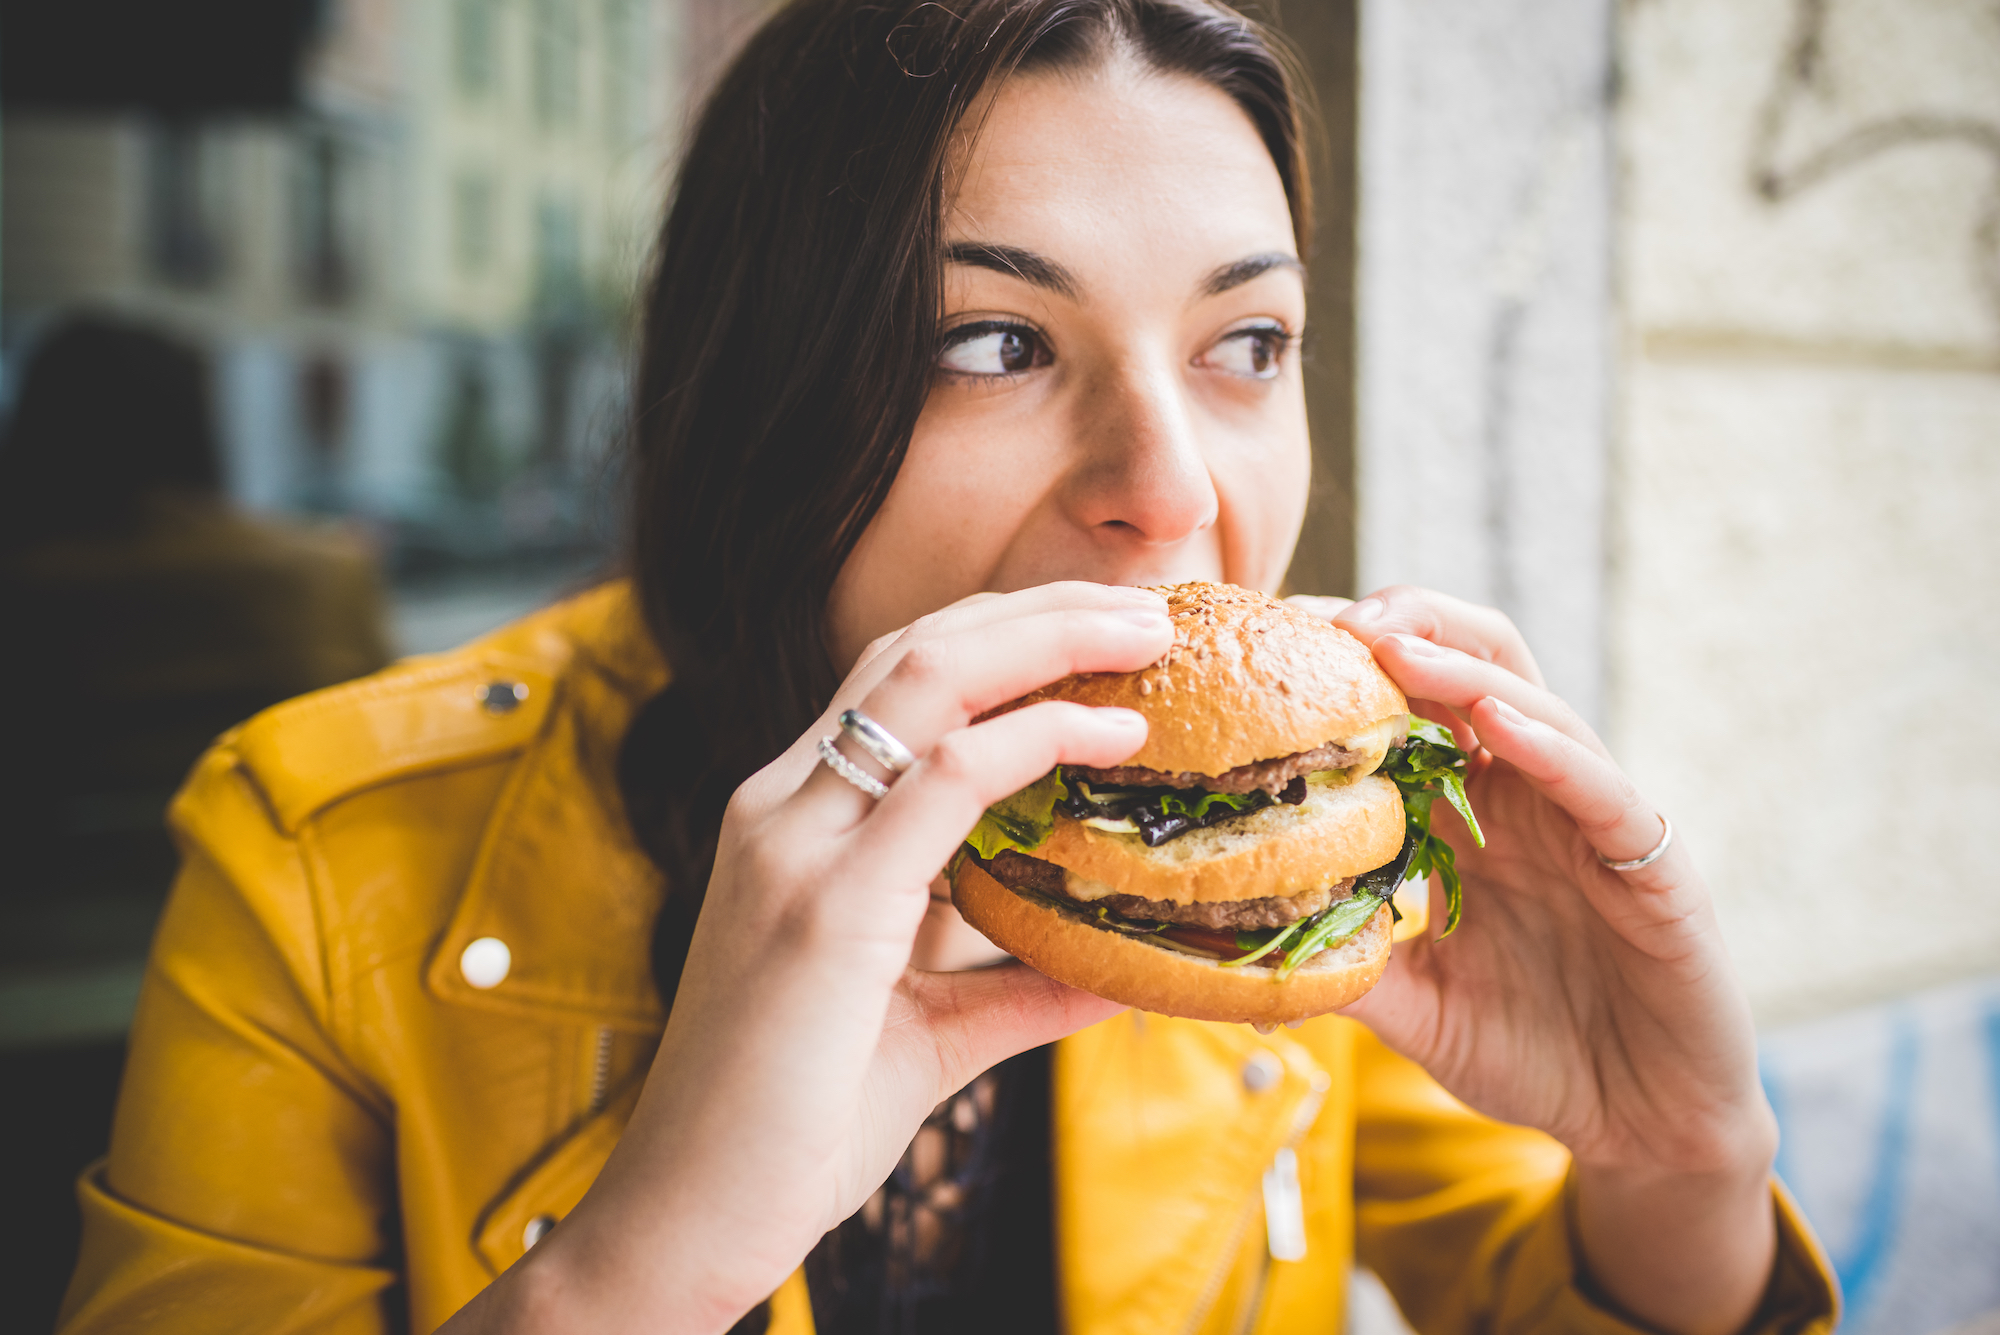 What happens to your body when you binge eat